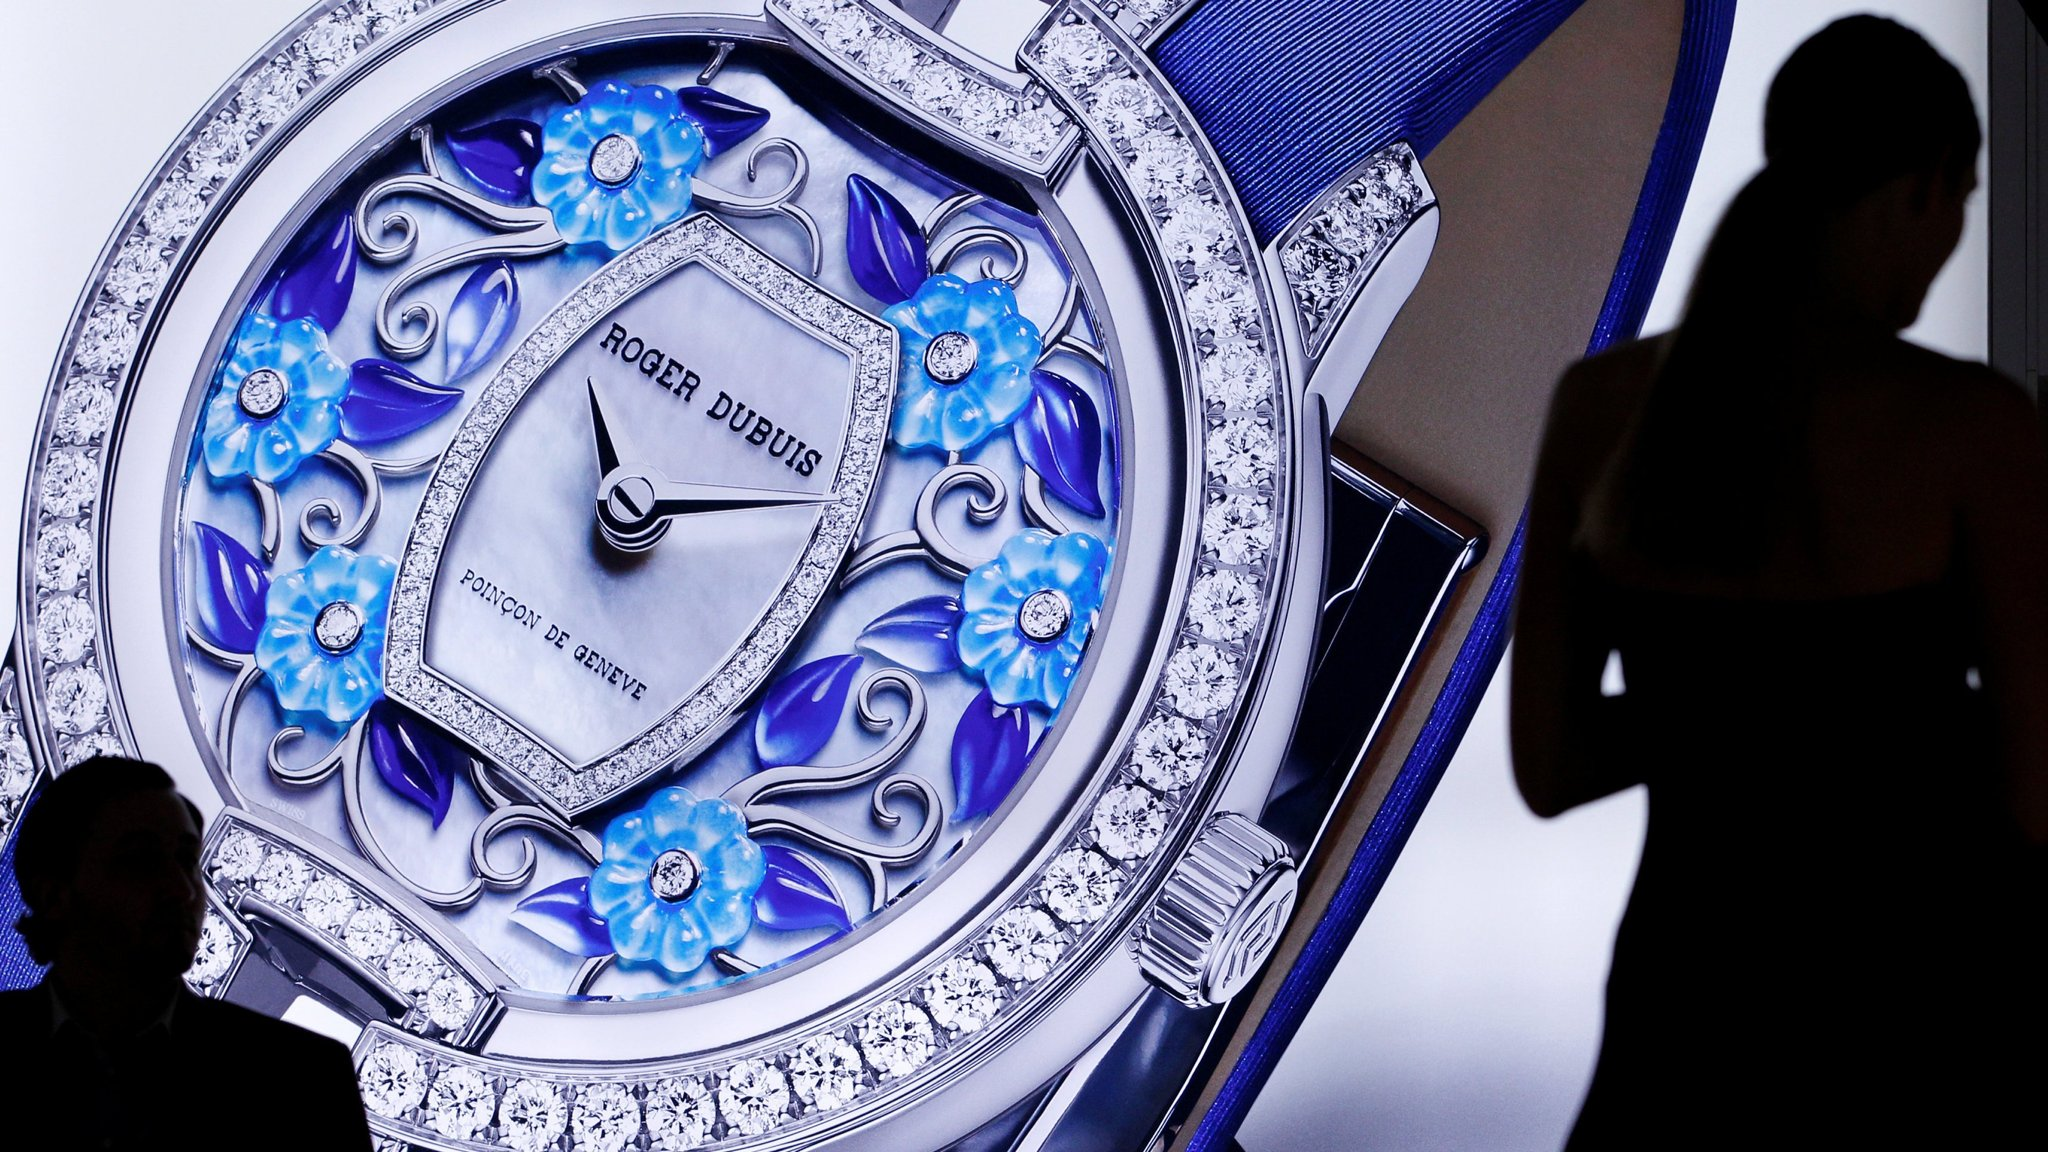 c4f9589bb86 Richemont buys back and destroys stock as sales fall